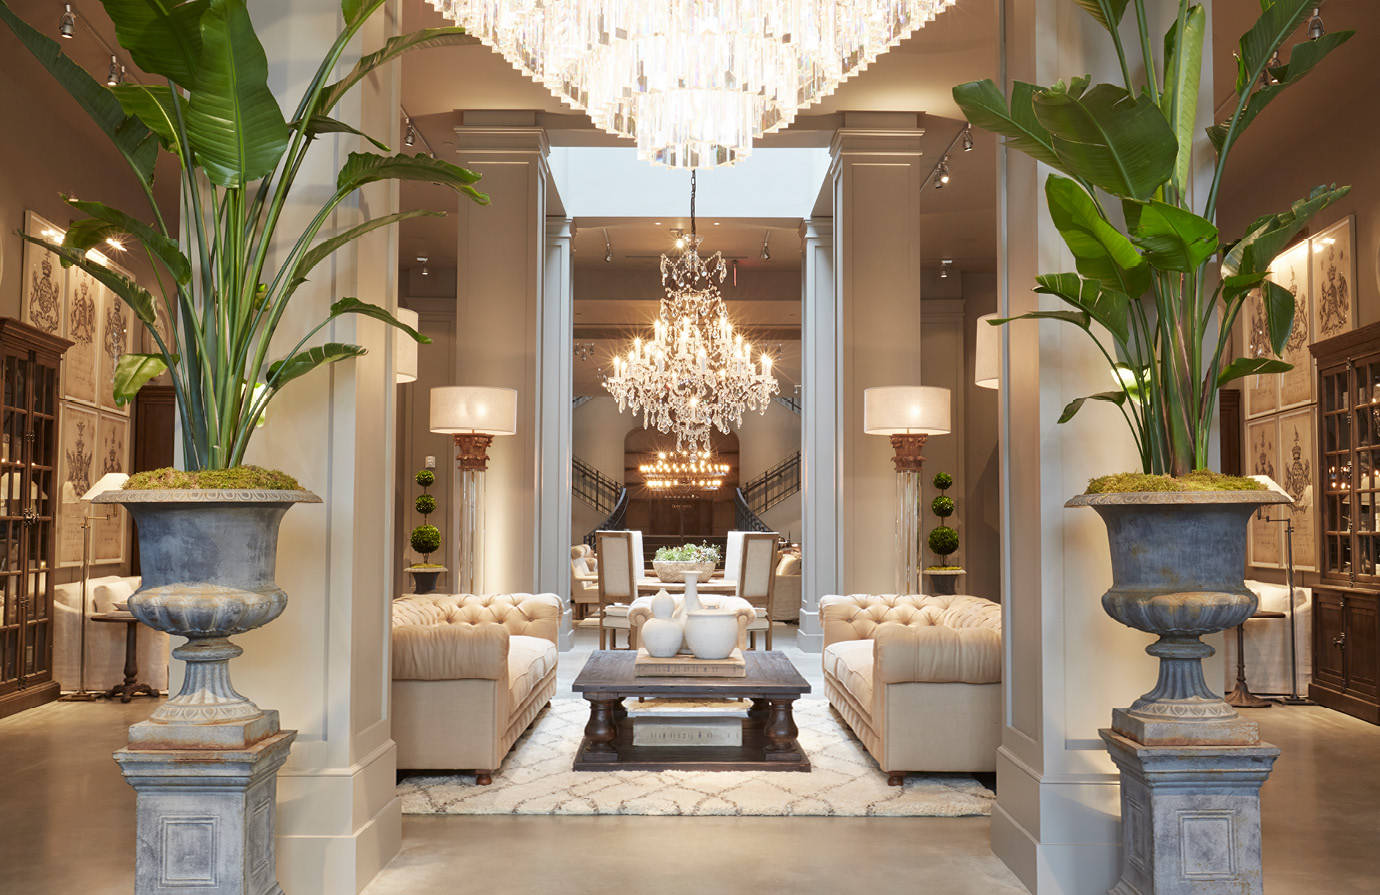 Restoration Hardware S Latest Store Delivers The Goods